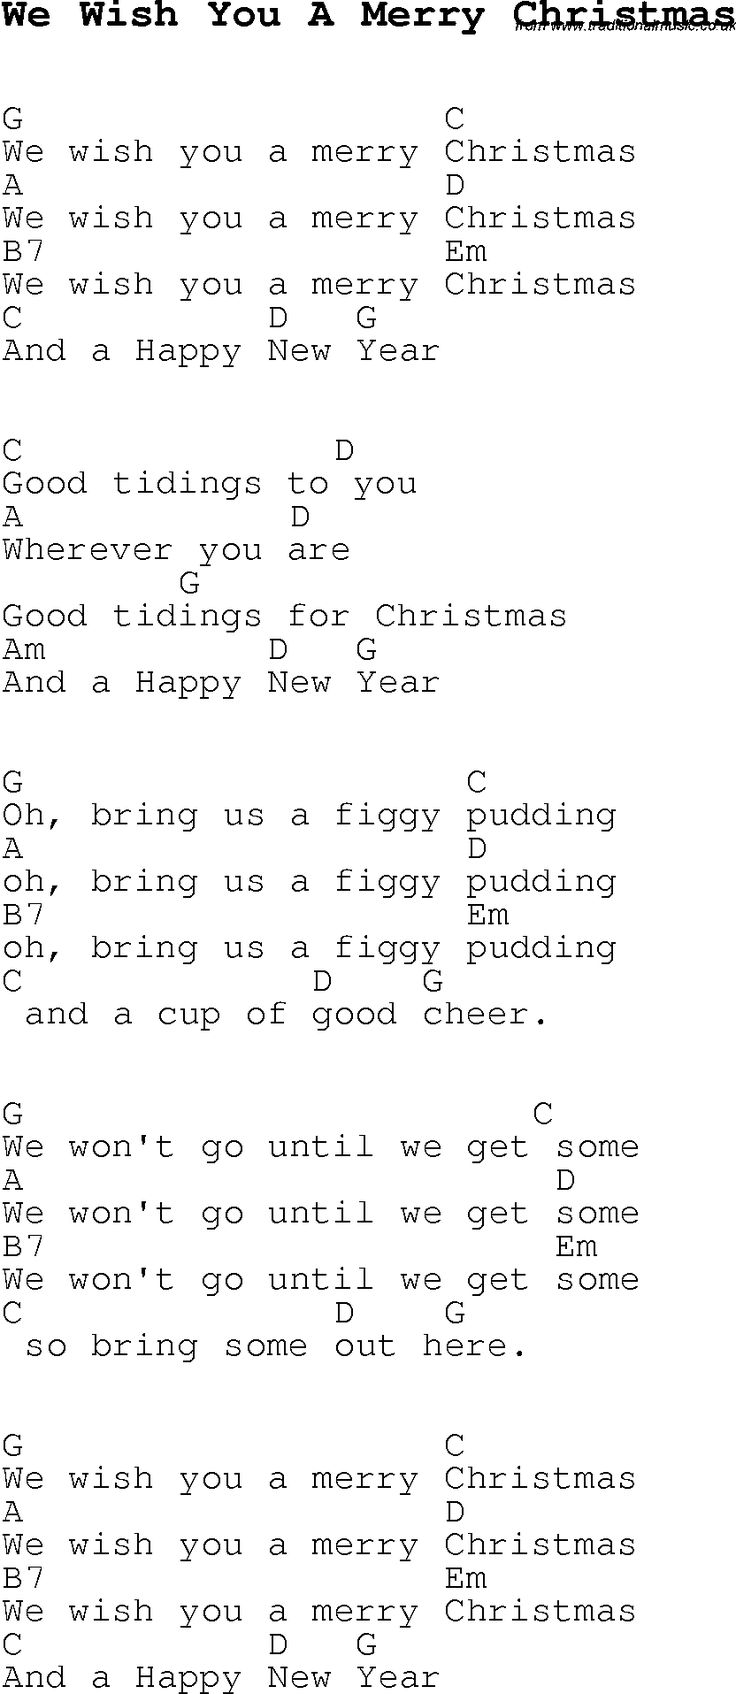 Christmas Songs and Carols, lyrics with chords for guitar banjo for We Wish You A Merry Christmas